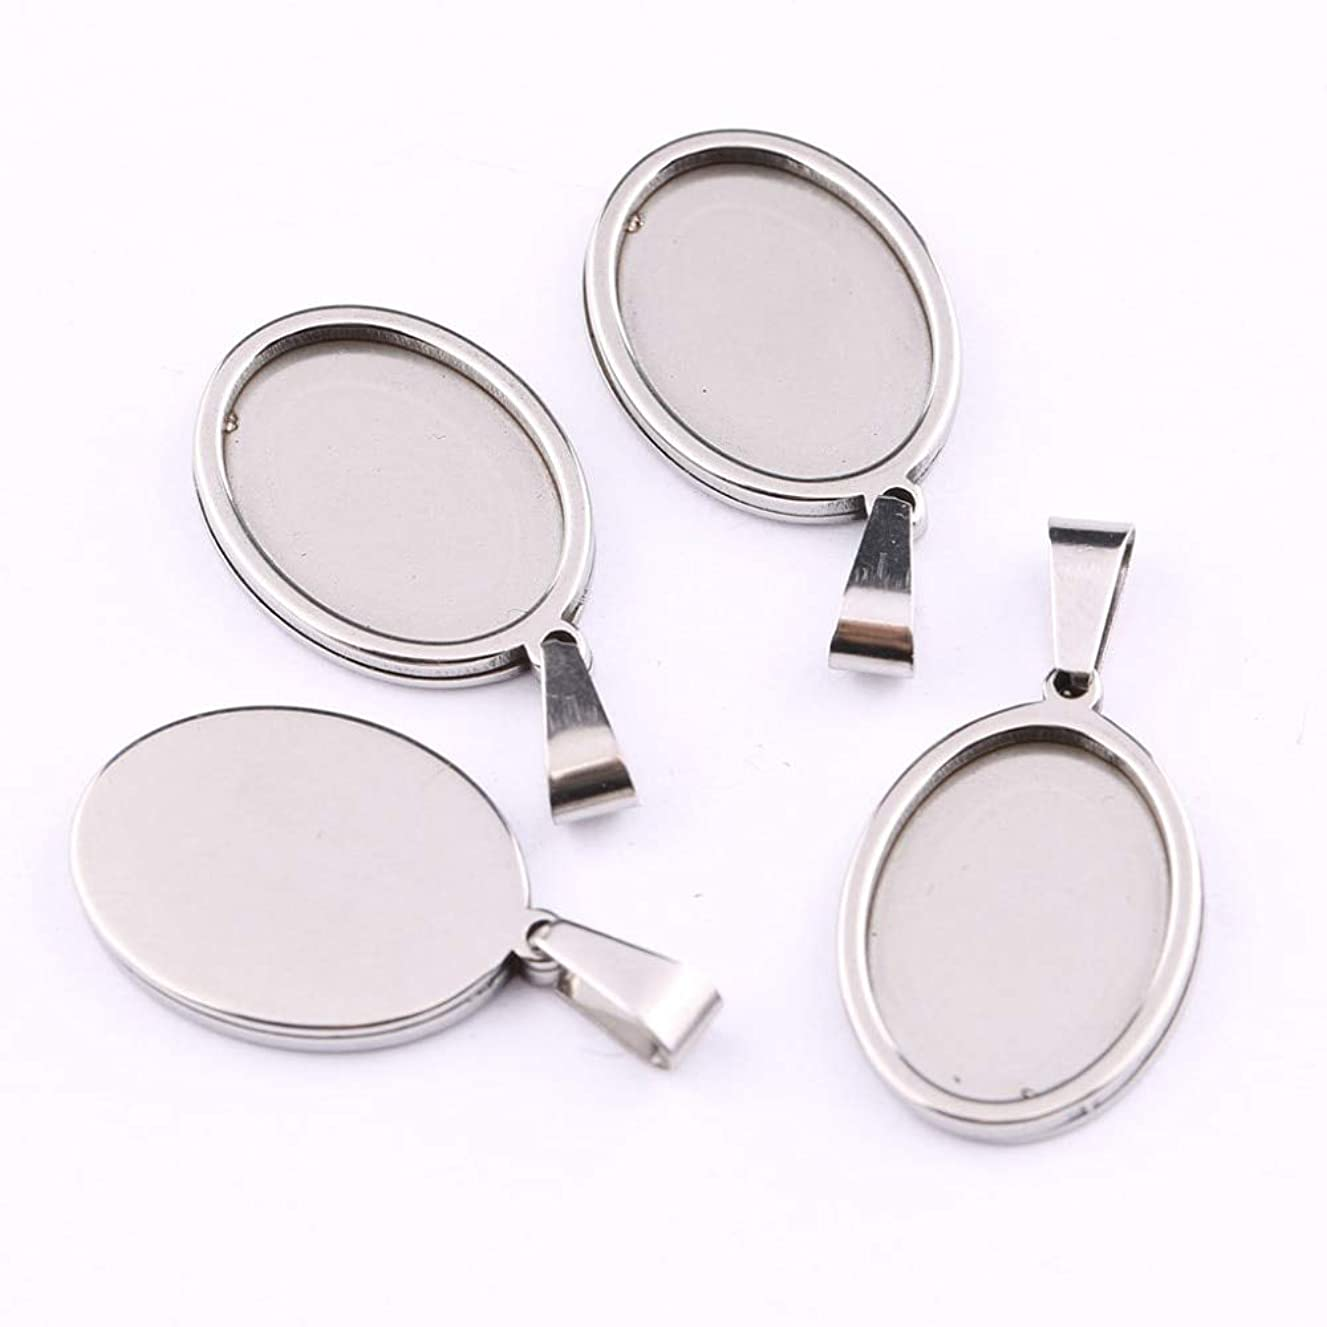 Laliva 5pcs Stainless Steel 13x18mm Dia Oval cabochon Base Setting DIY Blank Cameo Pendant Trays for Jewelry Making